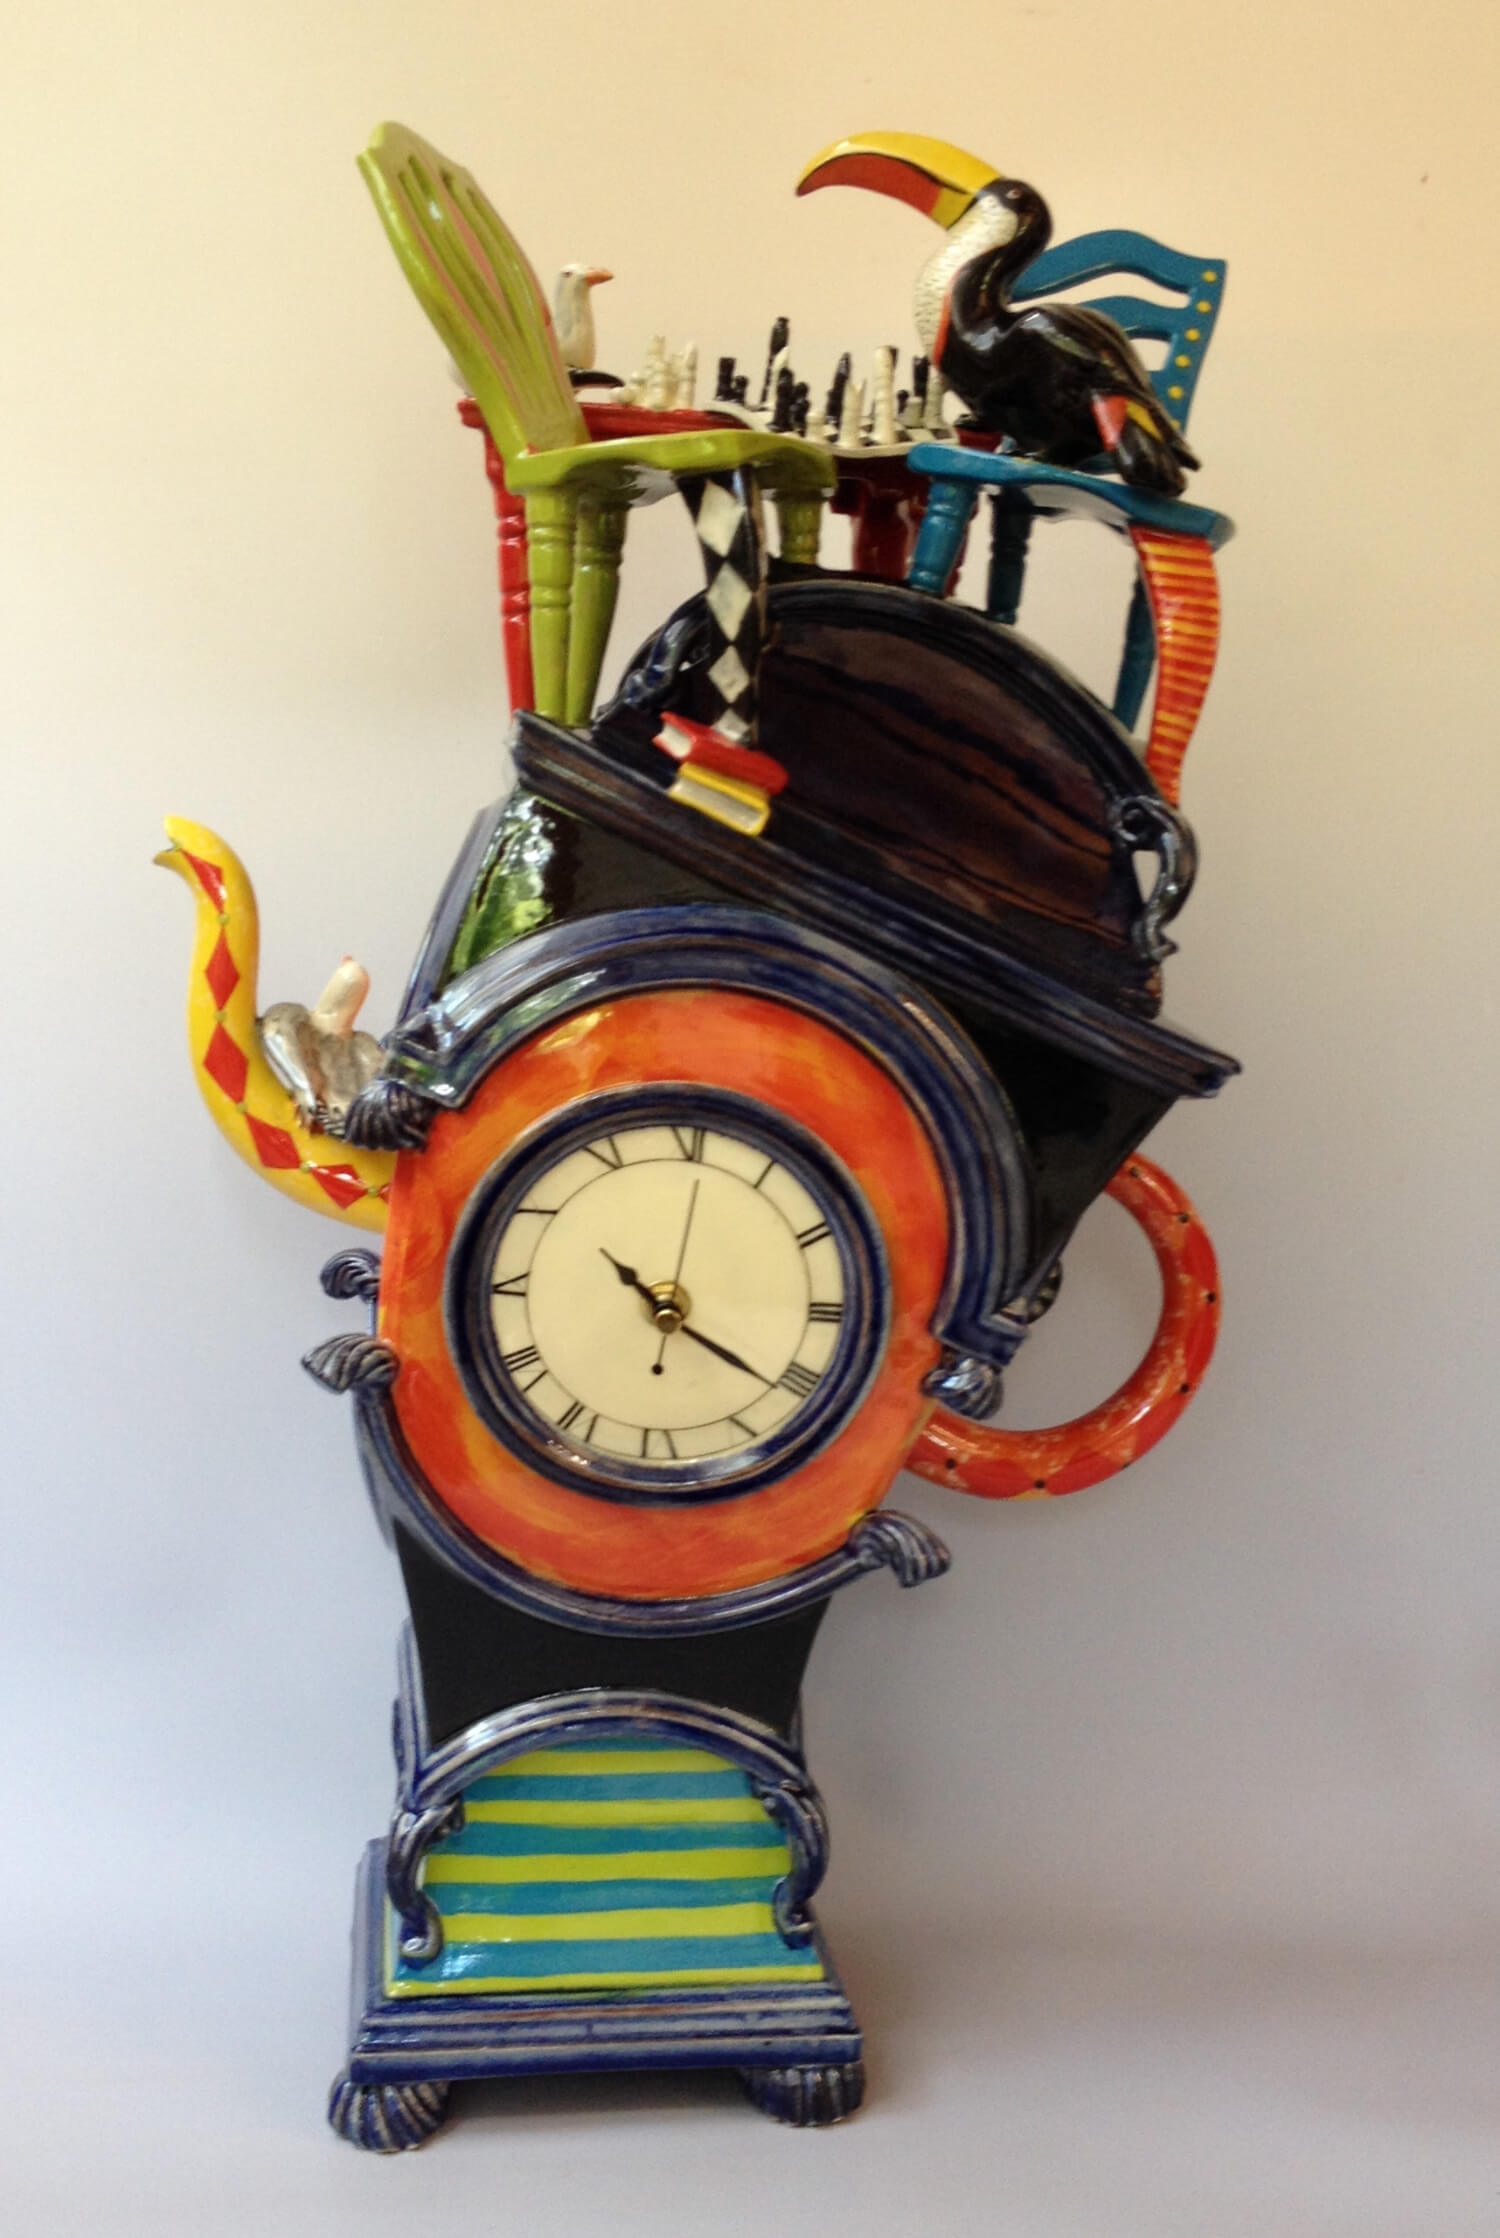 Leaning Teapot clock